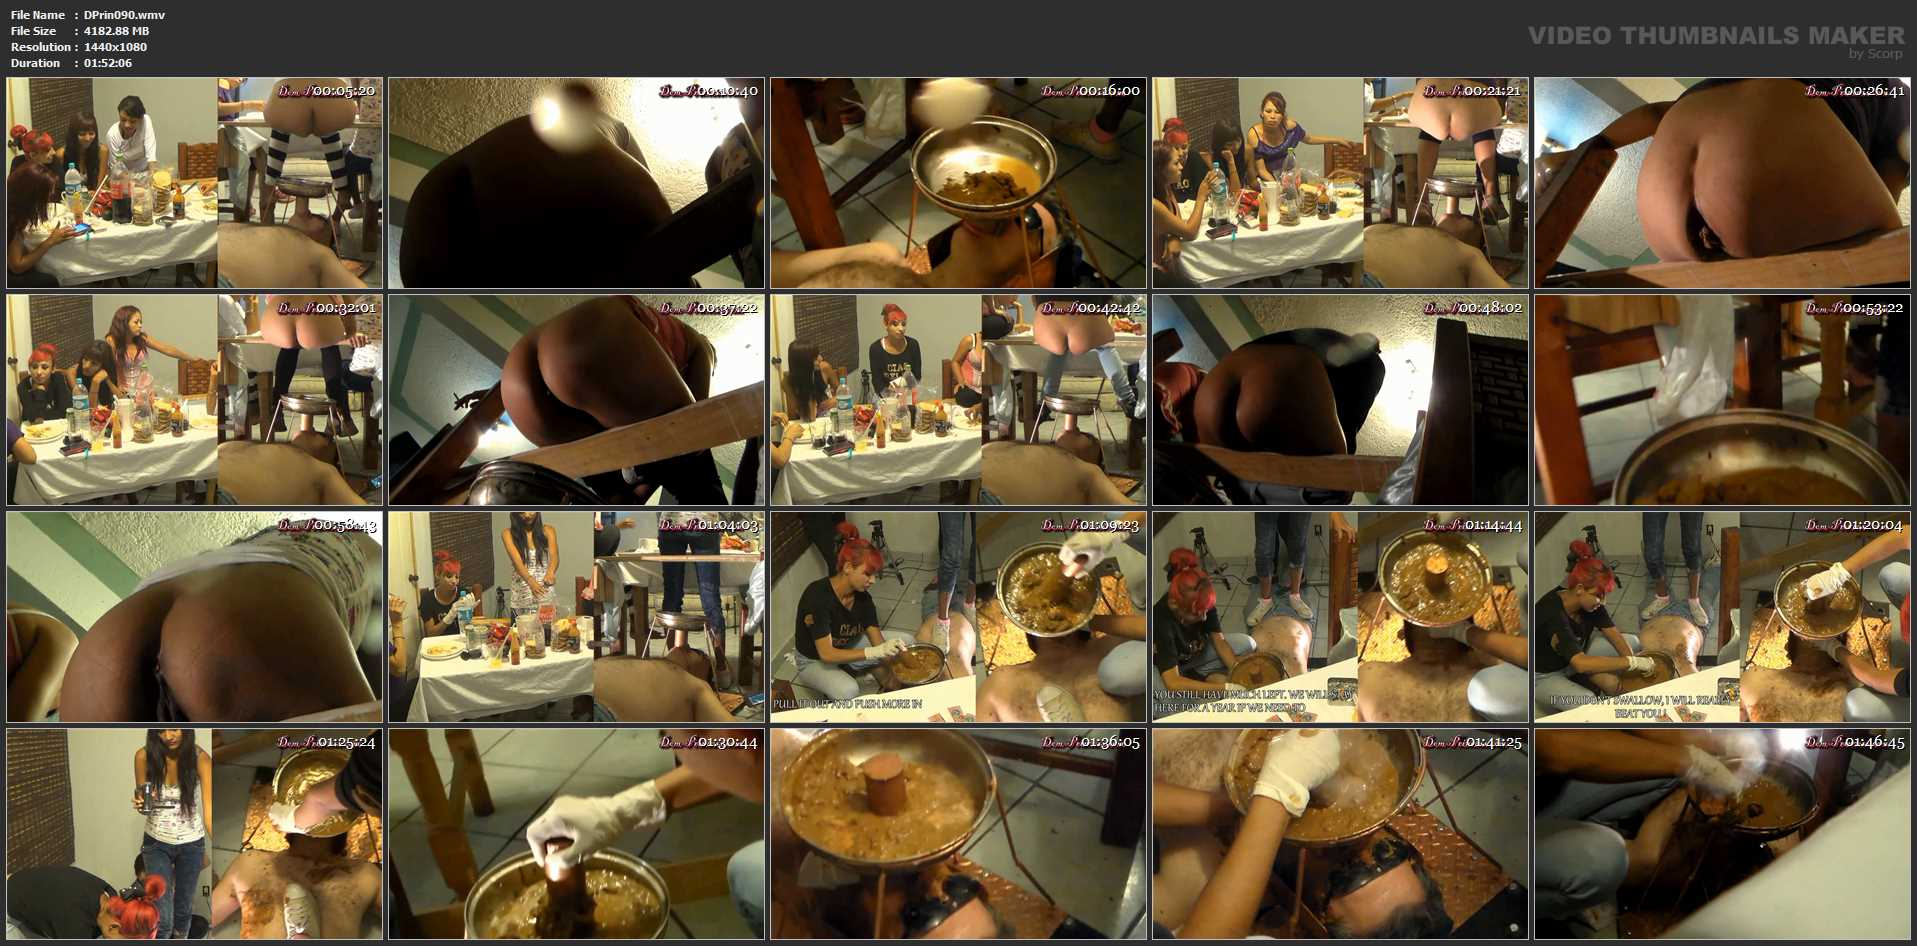 Toilet Mouth High Pressure System II - DOM-PRINCESS - FULL HD/1080p/WMV